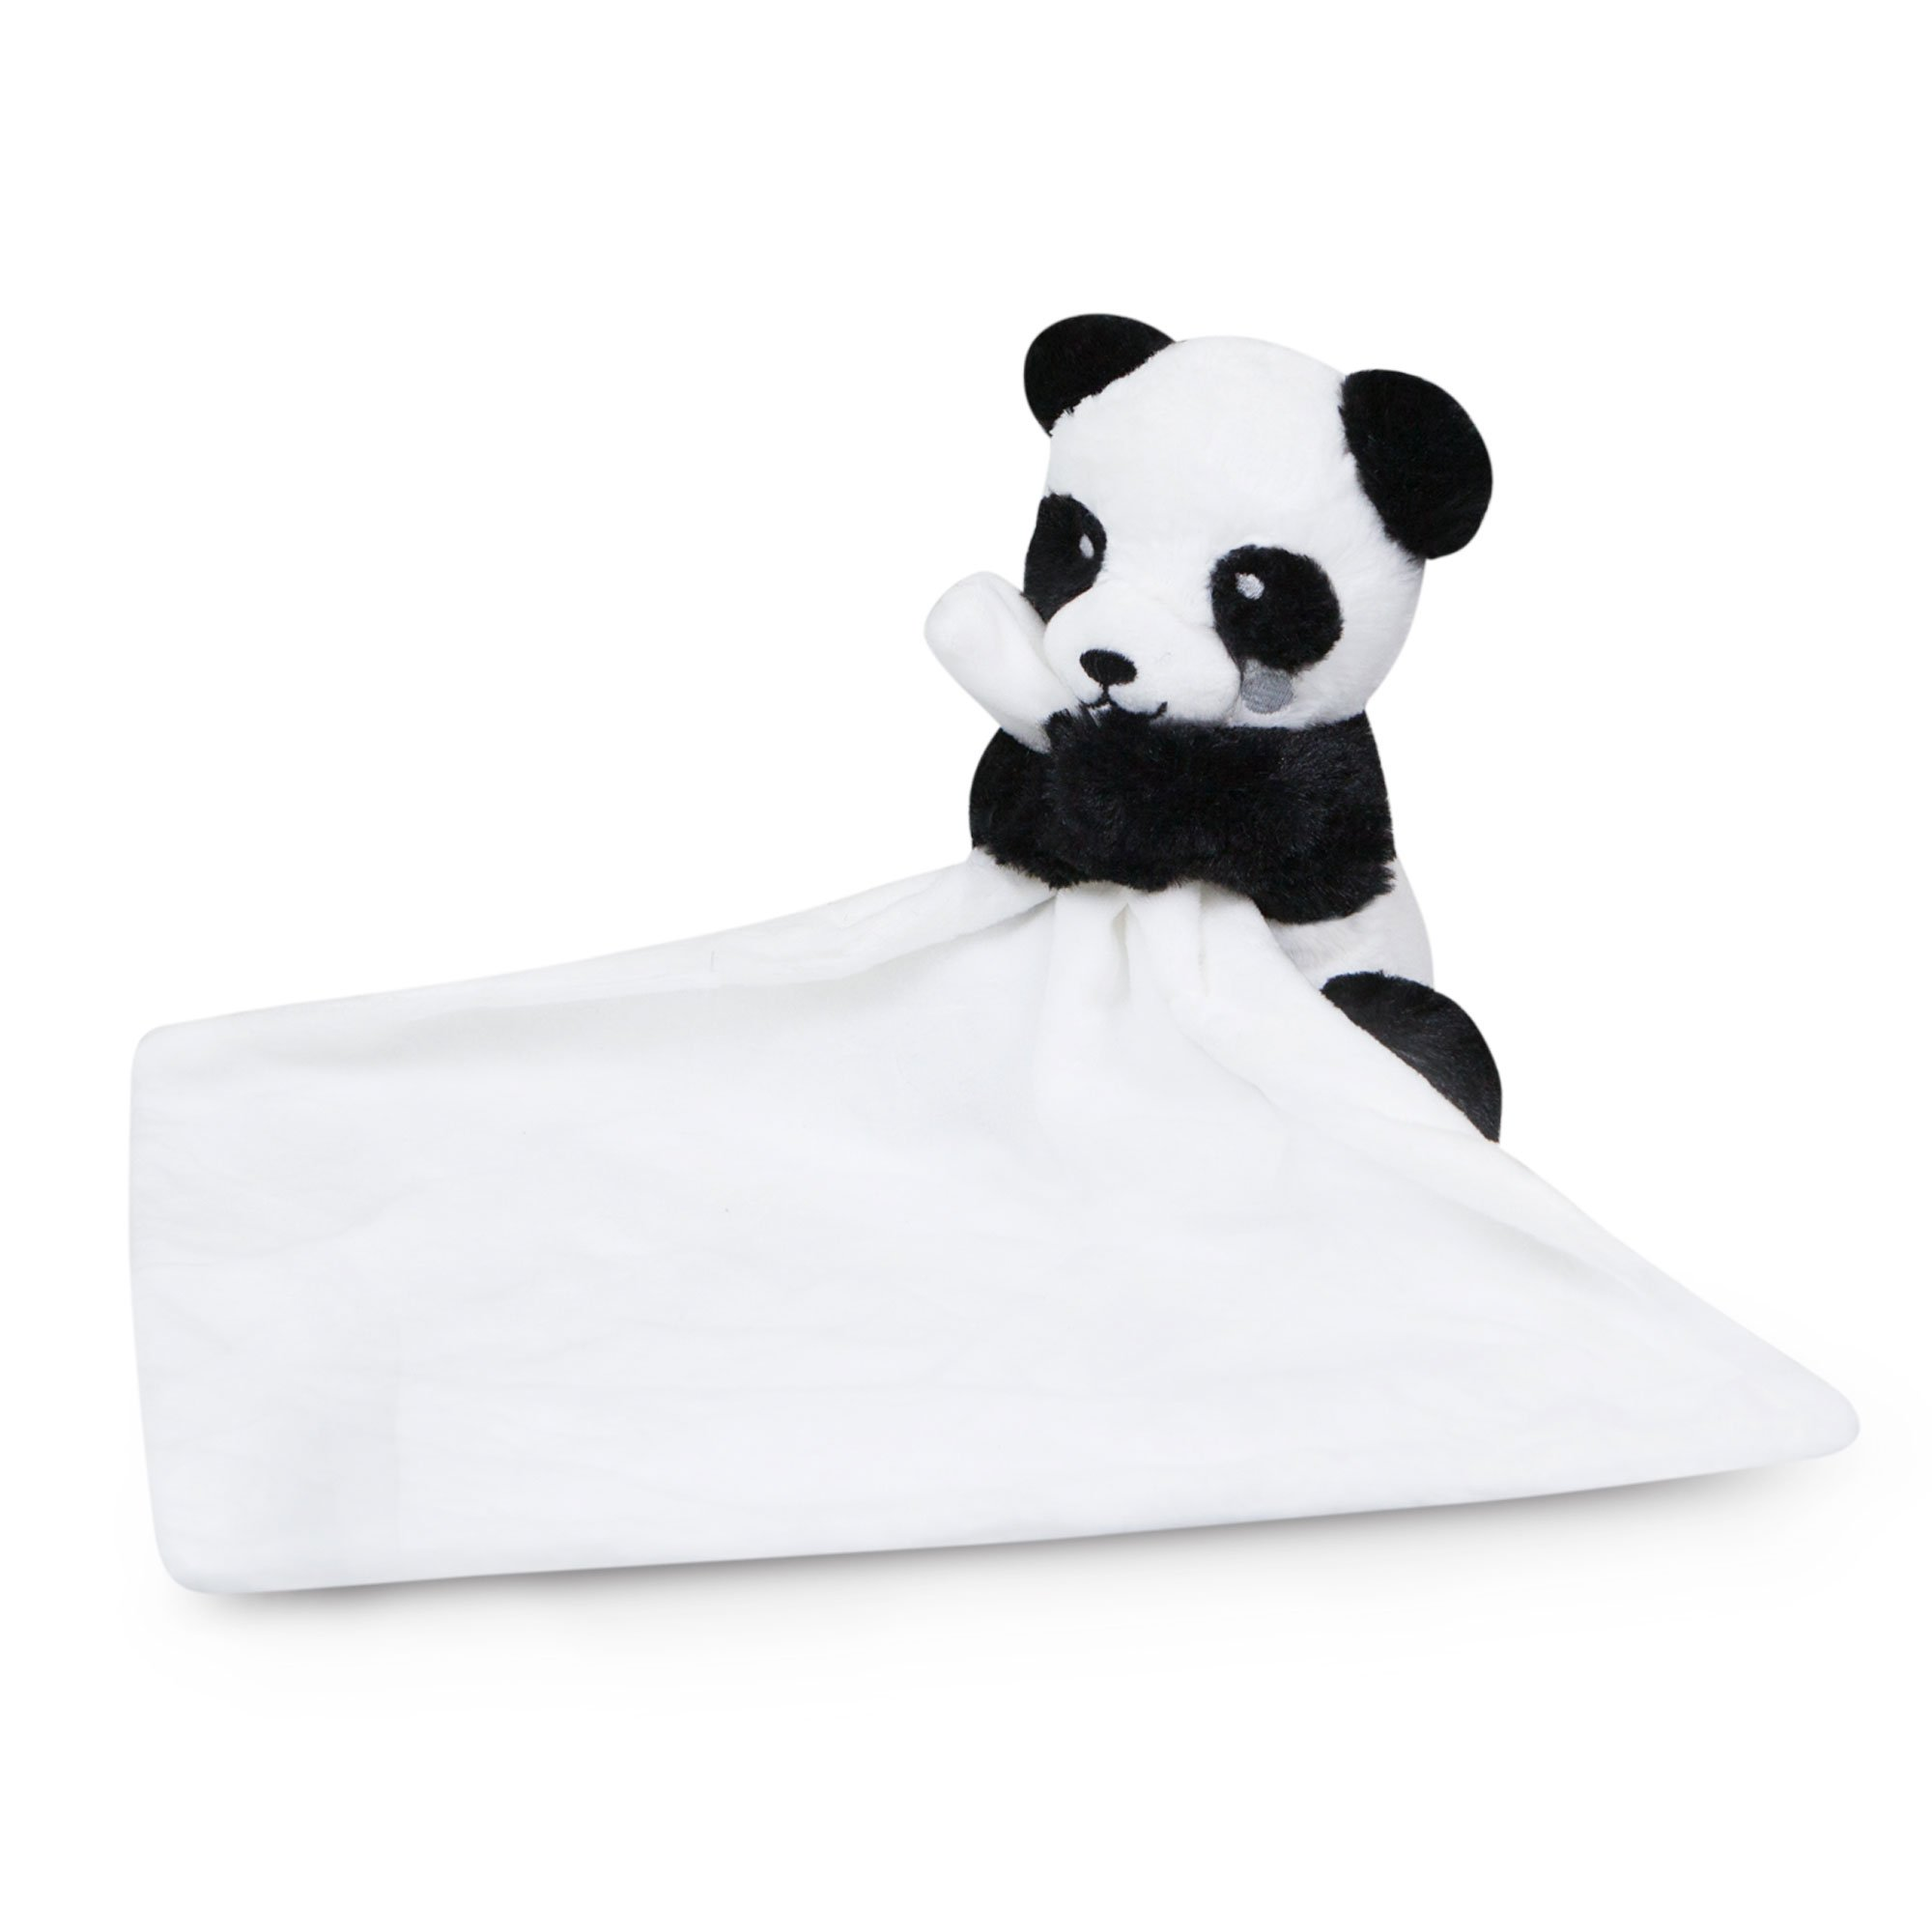 Waddle Panda Stuffed Animal Unisex Baby Blanket Rattle Toy Lovey Black and White